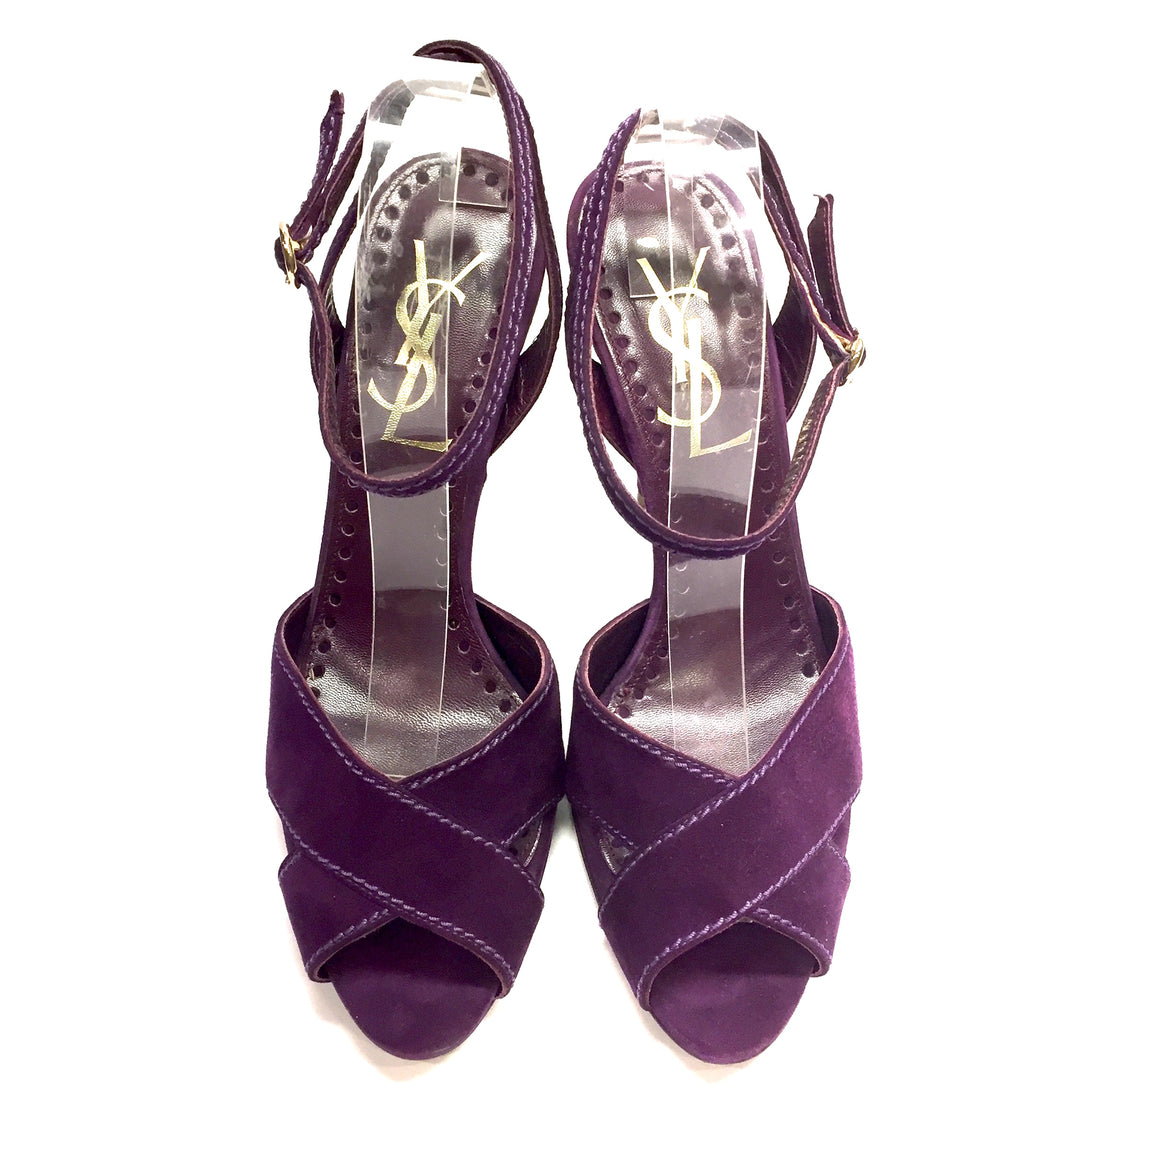 YVES ST. LAURENT / YSL purple Suede Open-Toe Slingback Hi-Heel Sandals Sz39.5